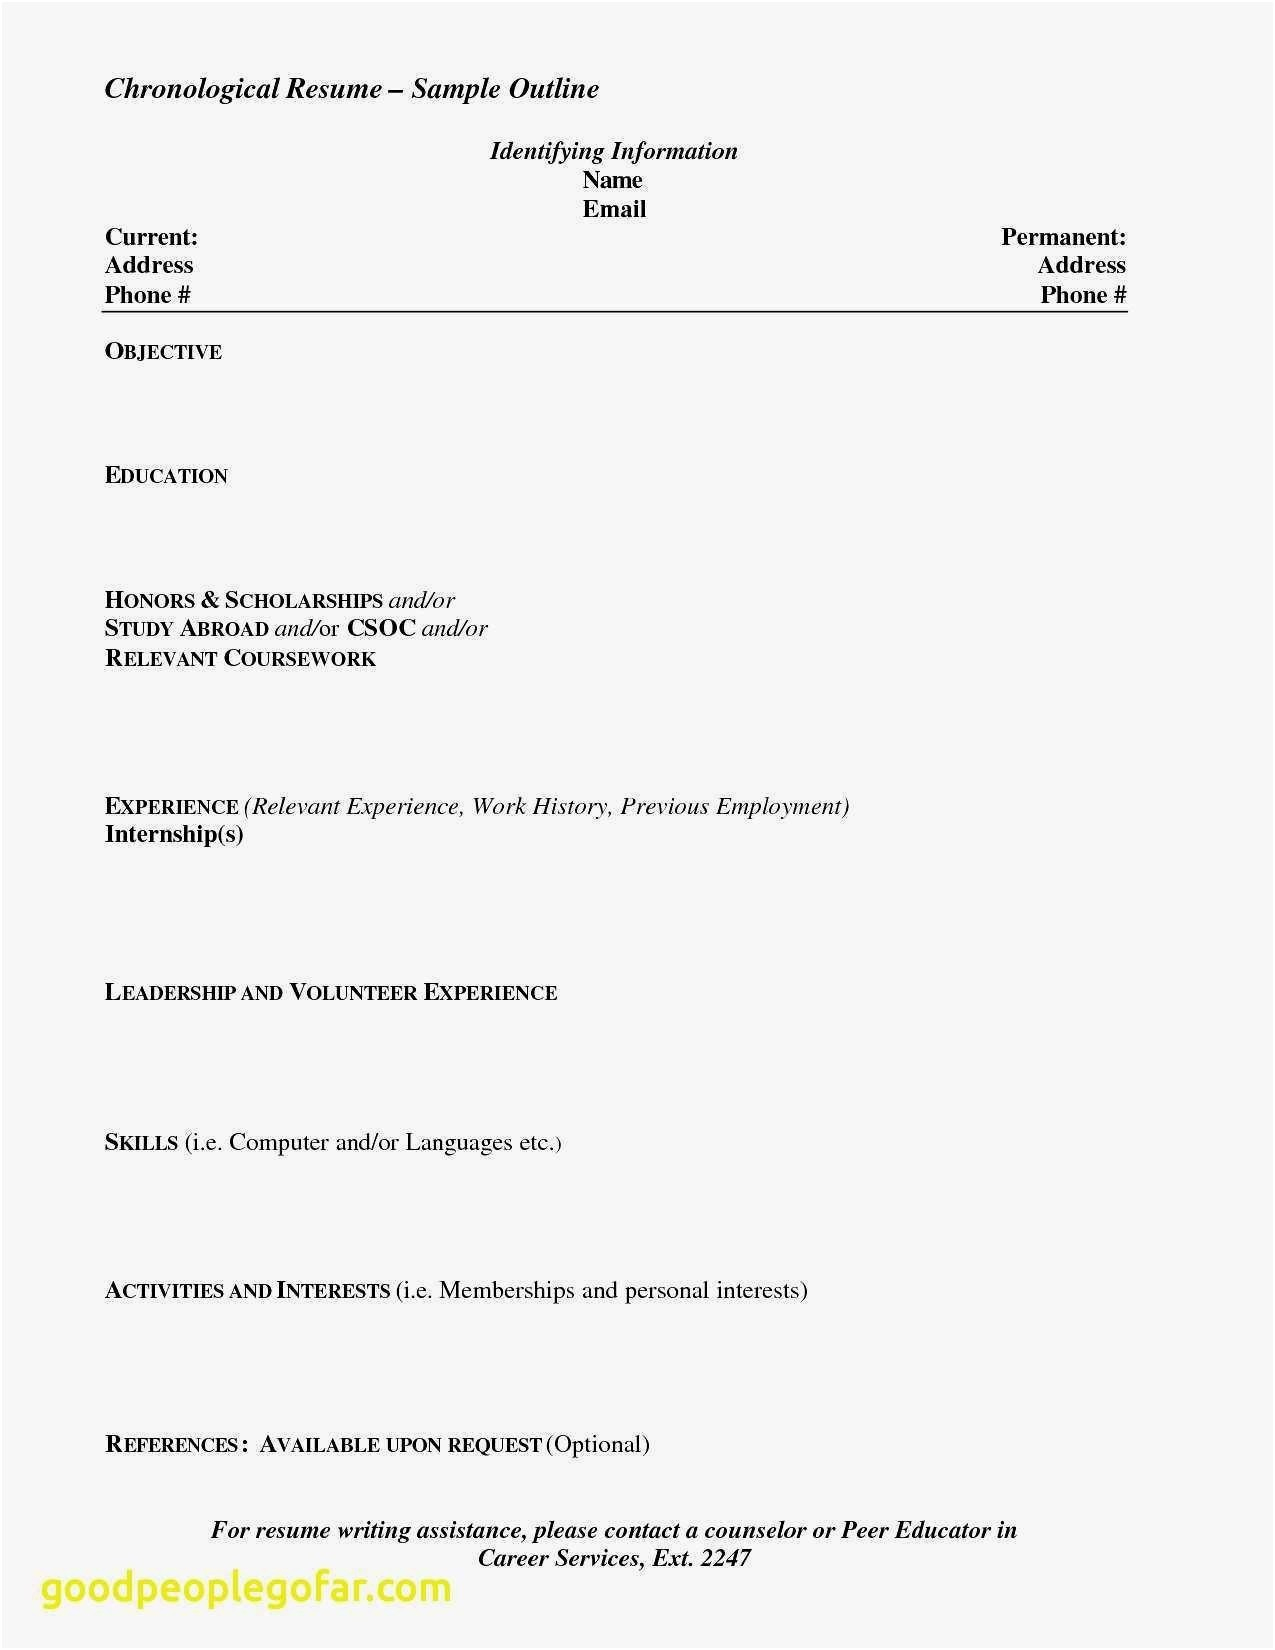 Music Teacher Resume Template - Teacher Resume Template Awesome Tutor Resume Example Inspirational